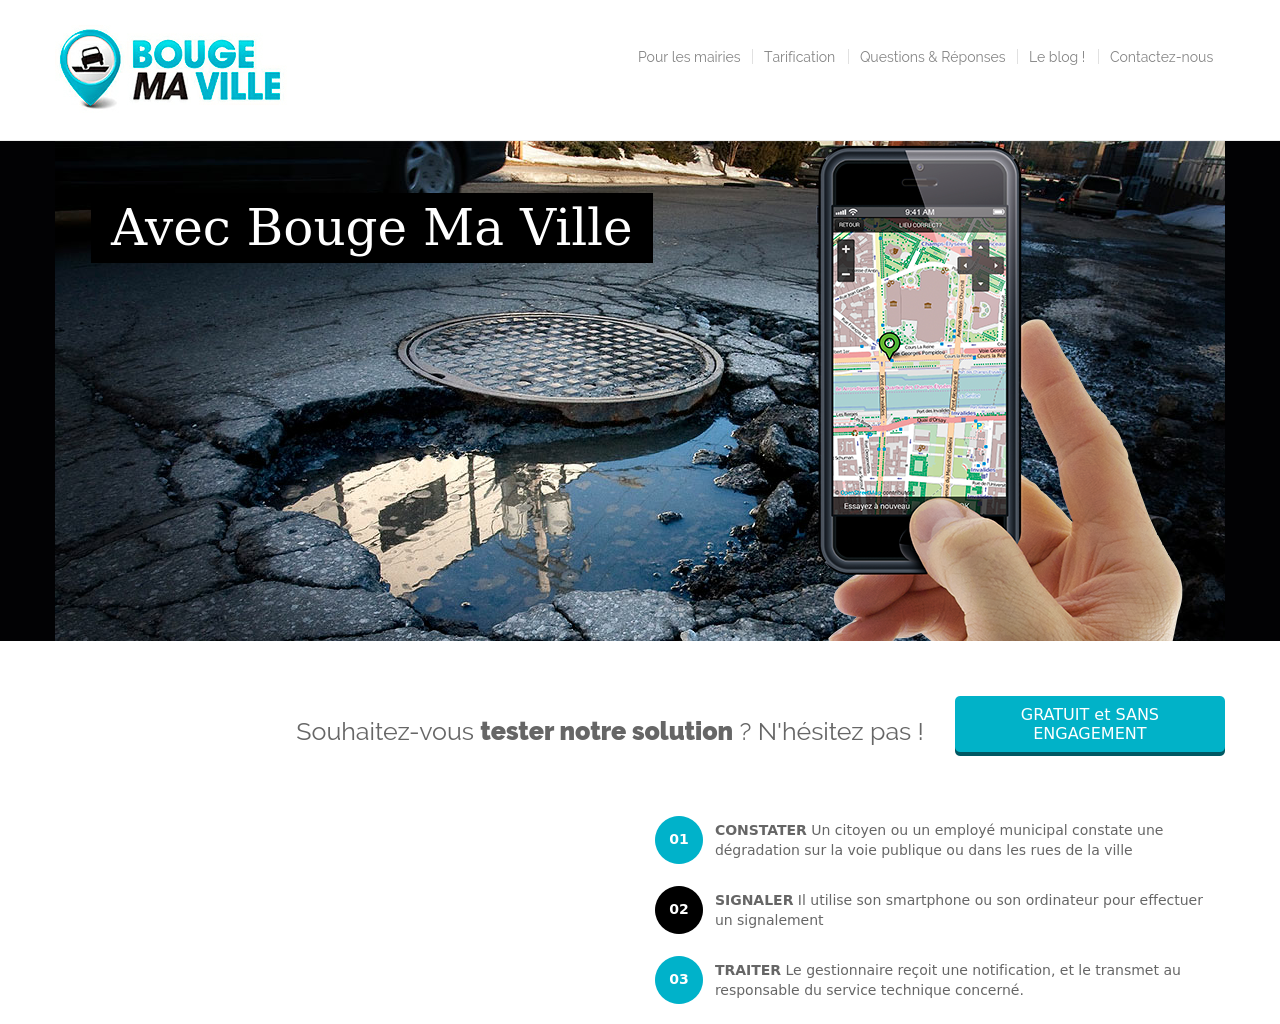 Une application Iphone pour le signalement des incidents de voirie